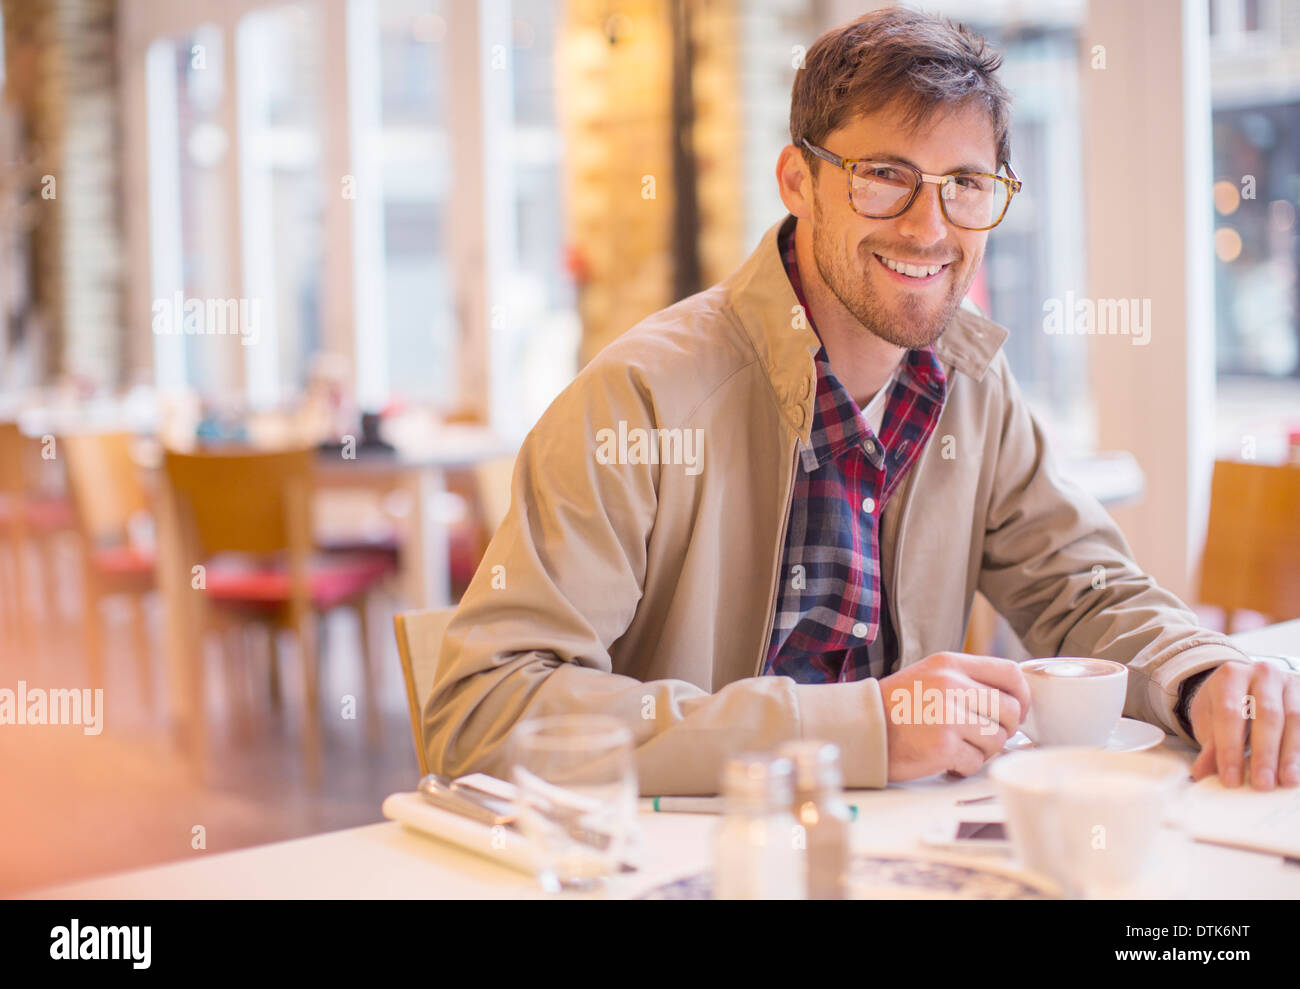 Man enjoying cup of coffee in cafe - Stock Image